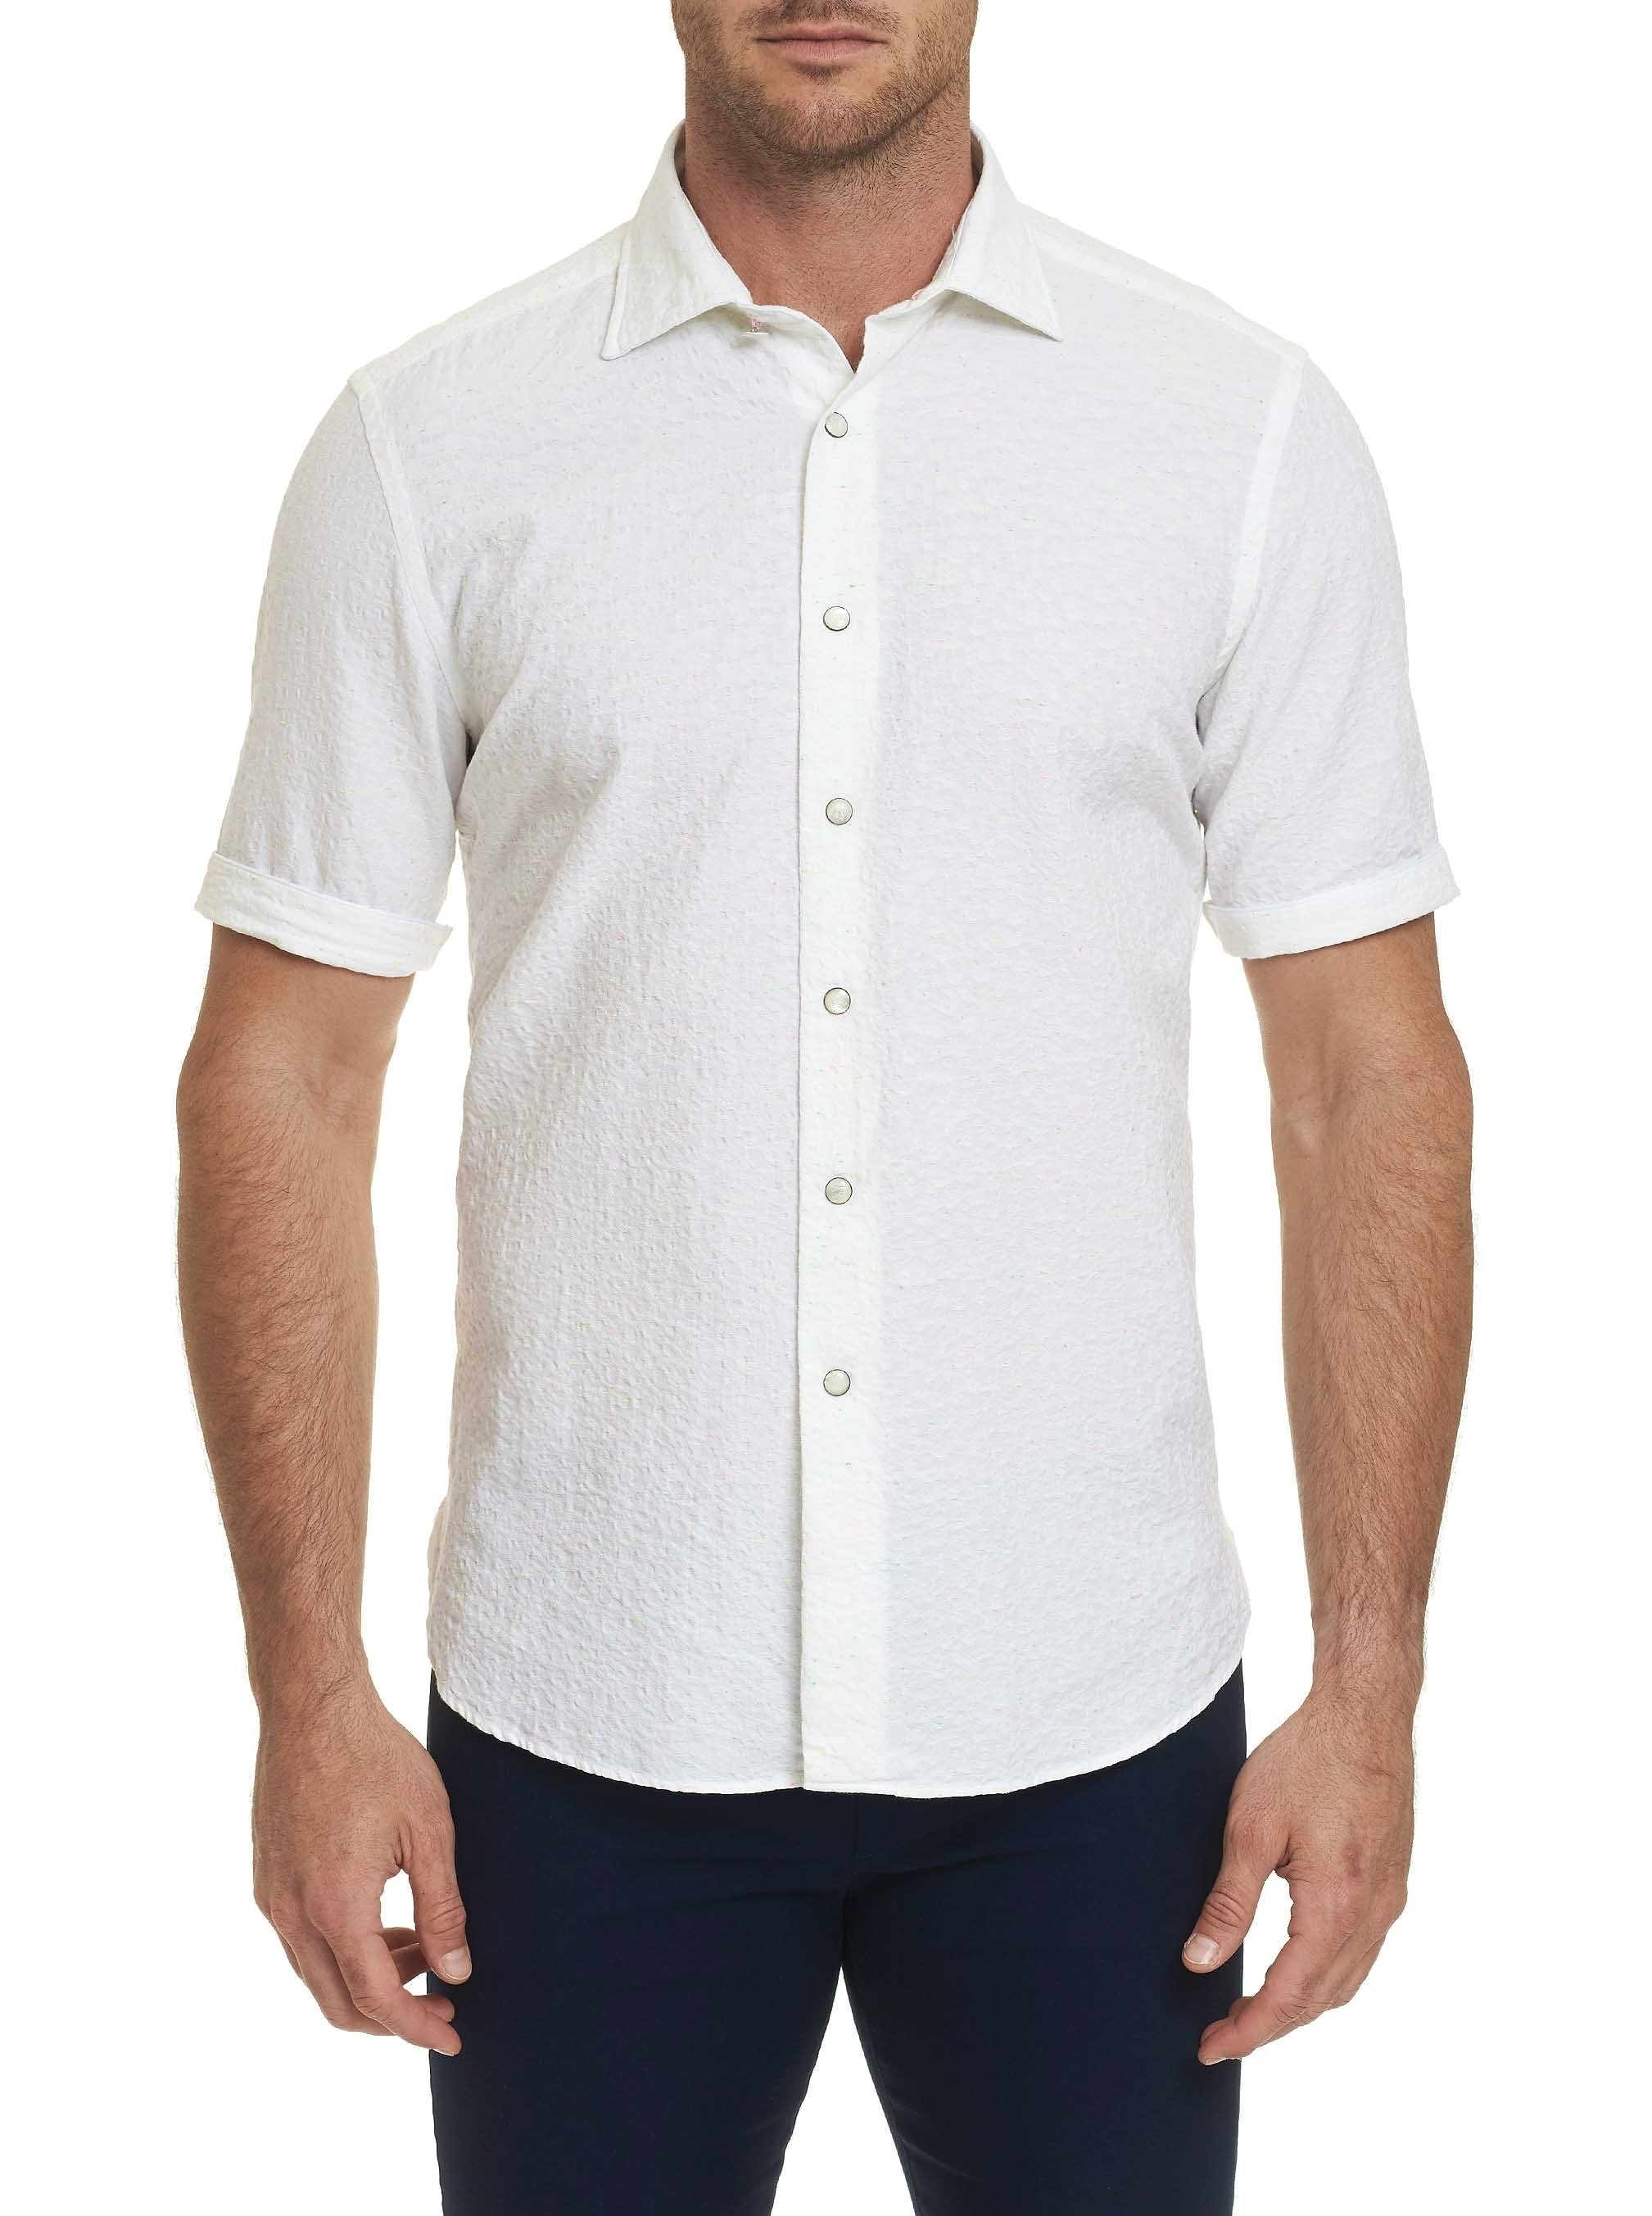 R COLLECTION ROMANO SHORT SLEEVE SHIRT